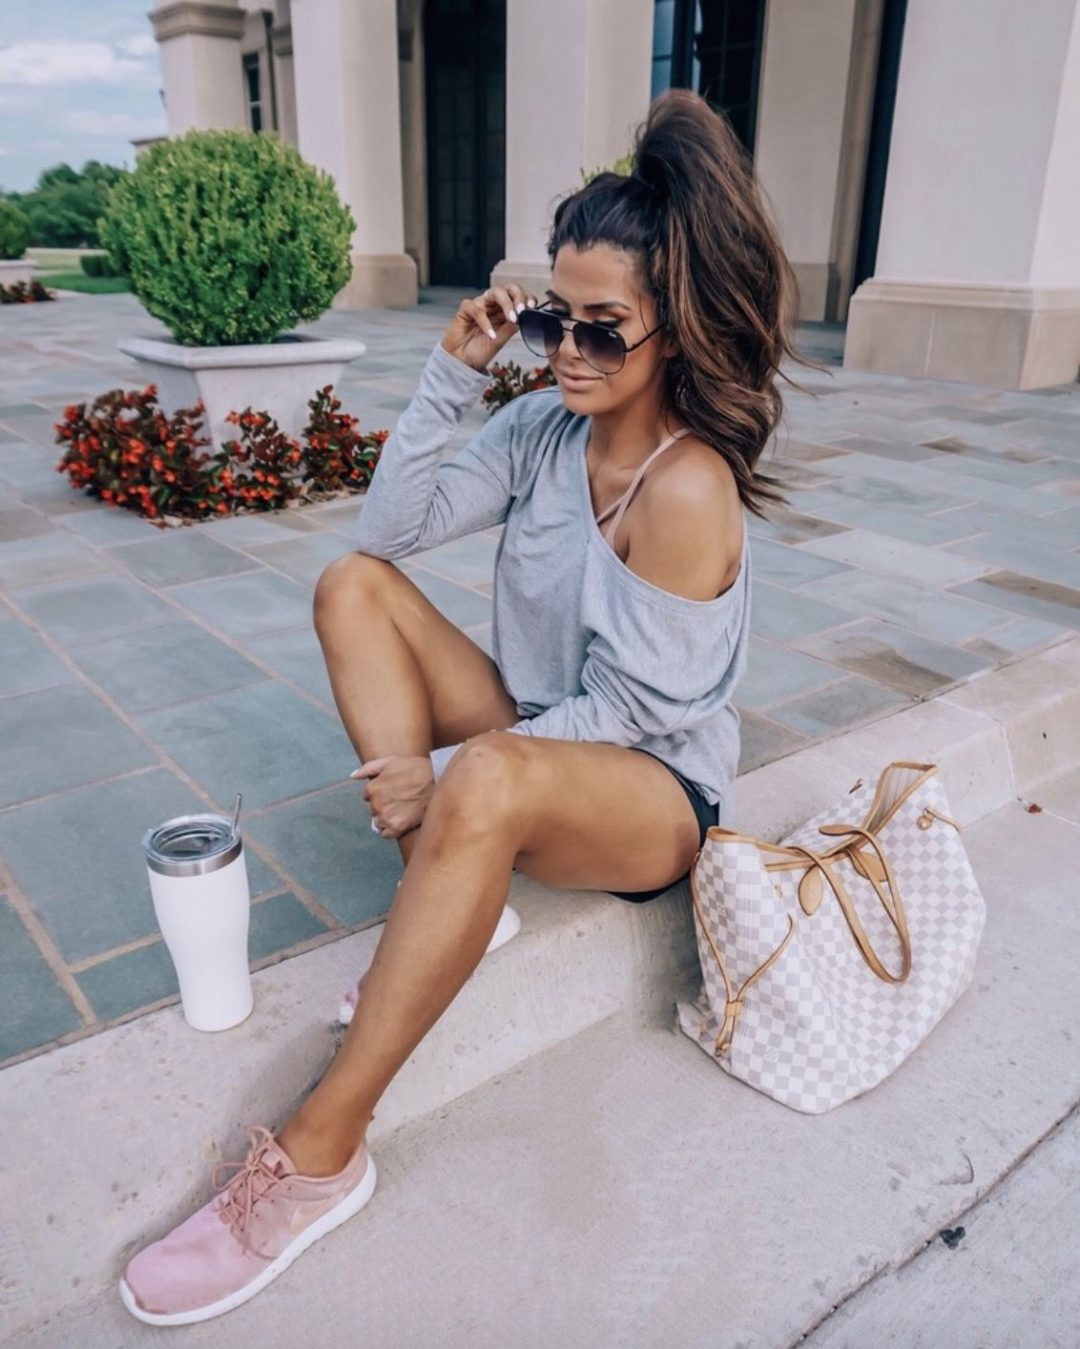 11+ Surprisingly Cute Sporty Outfits To Try: All athleisure lovers ahoy! Check out these sporty chic outfits, casual outfits and stylish gym outfits to get inspired for the new season. | Grey off shoulder sweater, pink sneakers and Louis Vuitton Neverfull outfit - perfect for airport outfits. Image ©EmilyAnnGemma #sportyoutfits #casualoutfits #athleisure #airportoutfits